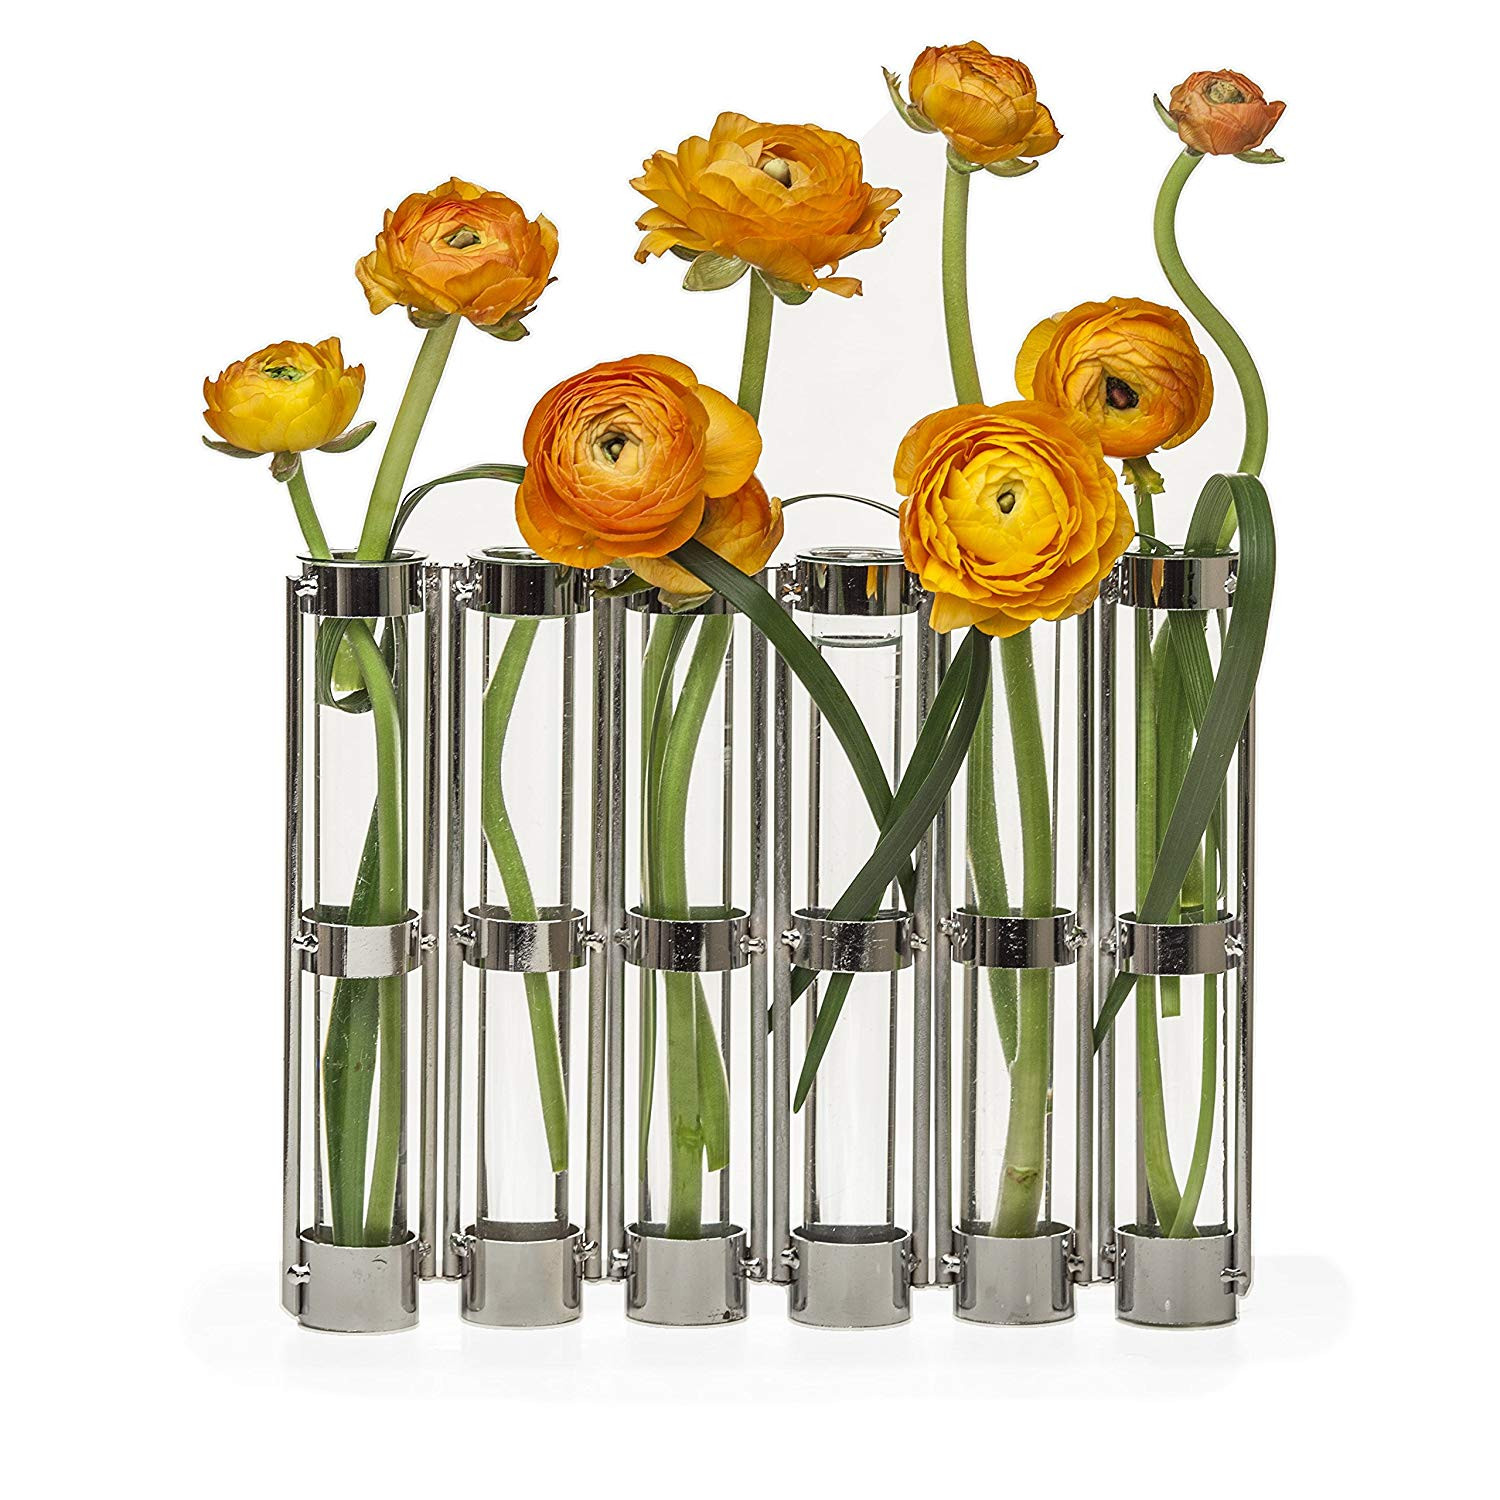 Test Tube Flower Vase Rack Of Amazon Com Danya B Metallic Six Tube Hinged Bud Vase In Silver Pertaining to Amazon Com Danya B Metallic Six Tube Hinged Bud Vase In Silver Finish Home Kitchen